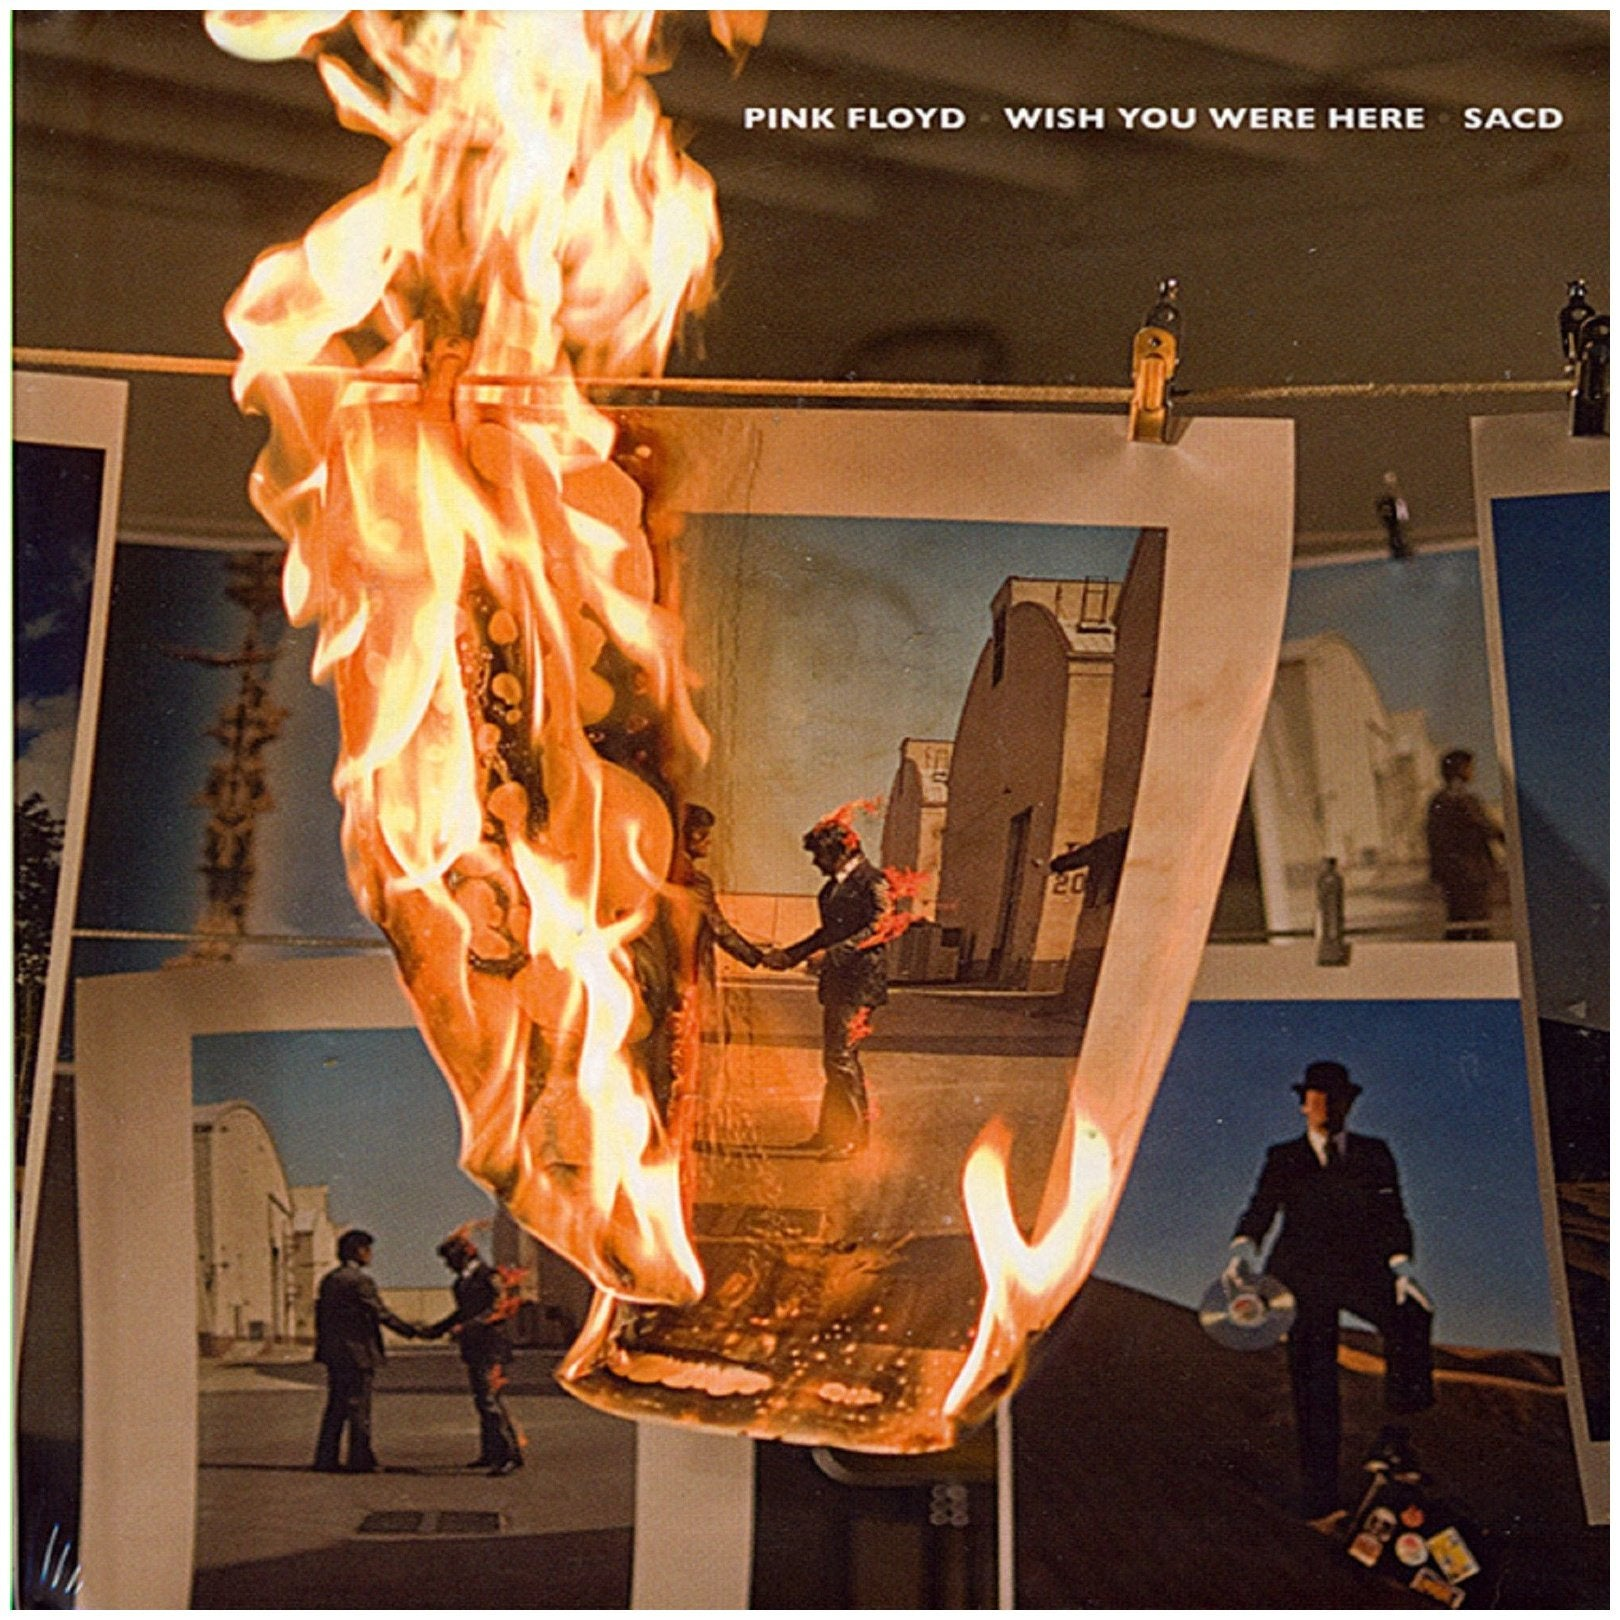 Pink Floyd - Pink Floyd - Wish You Were Here - Sacd - Cd